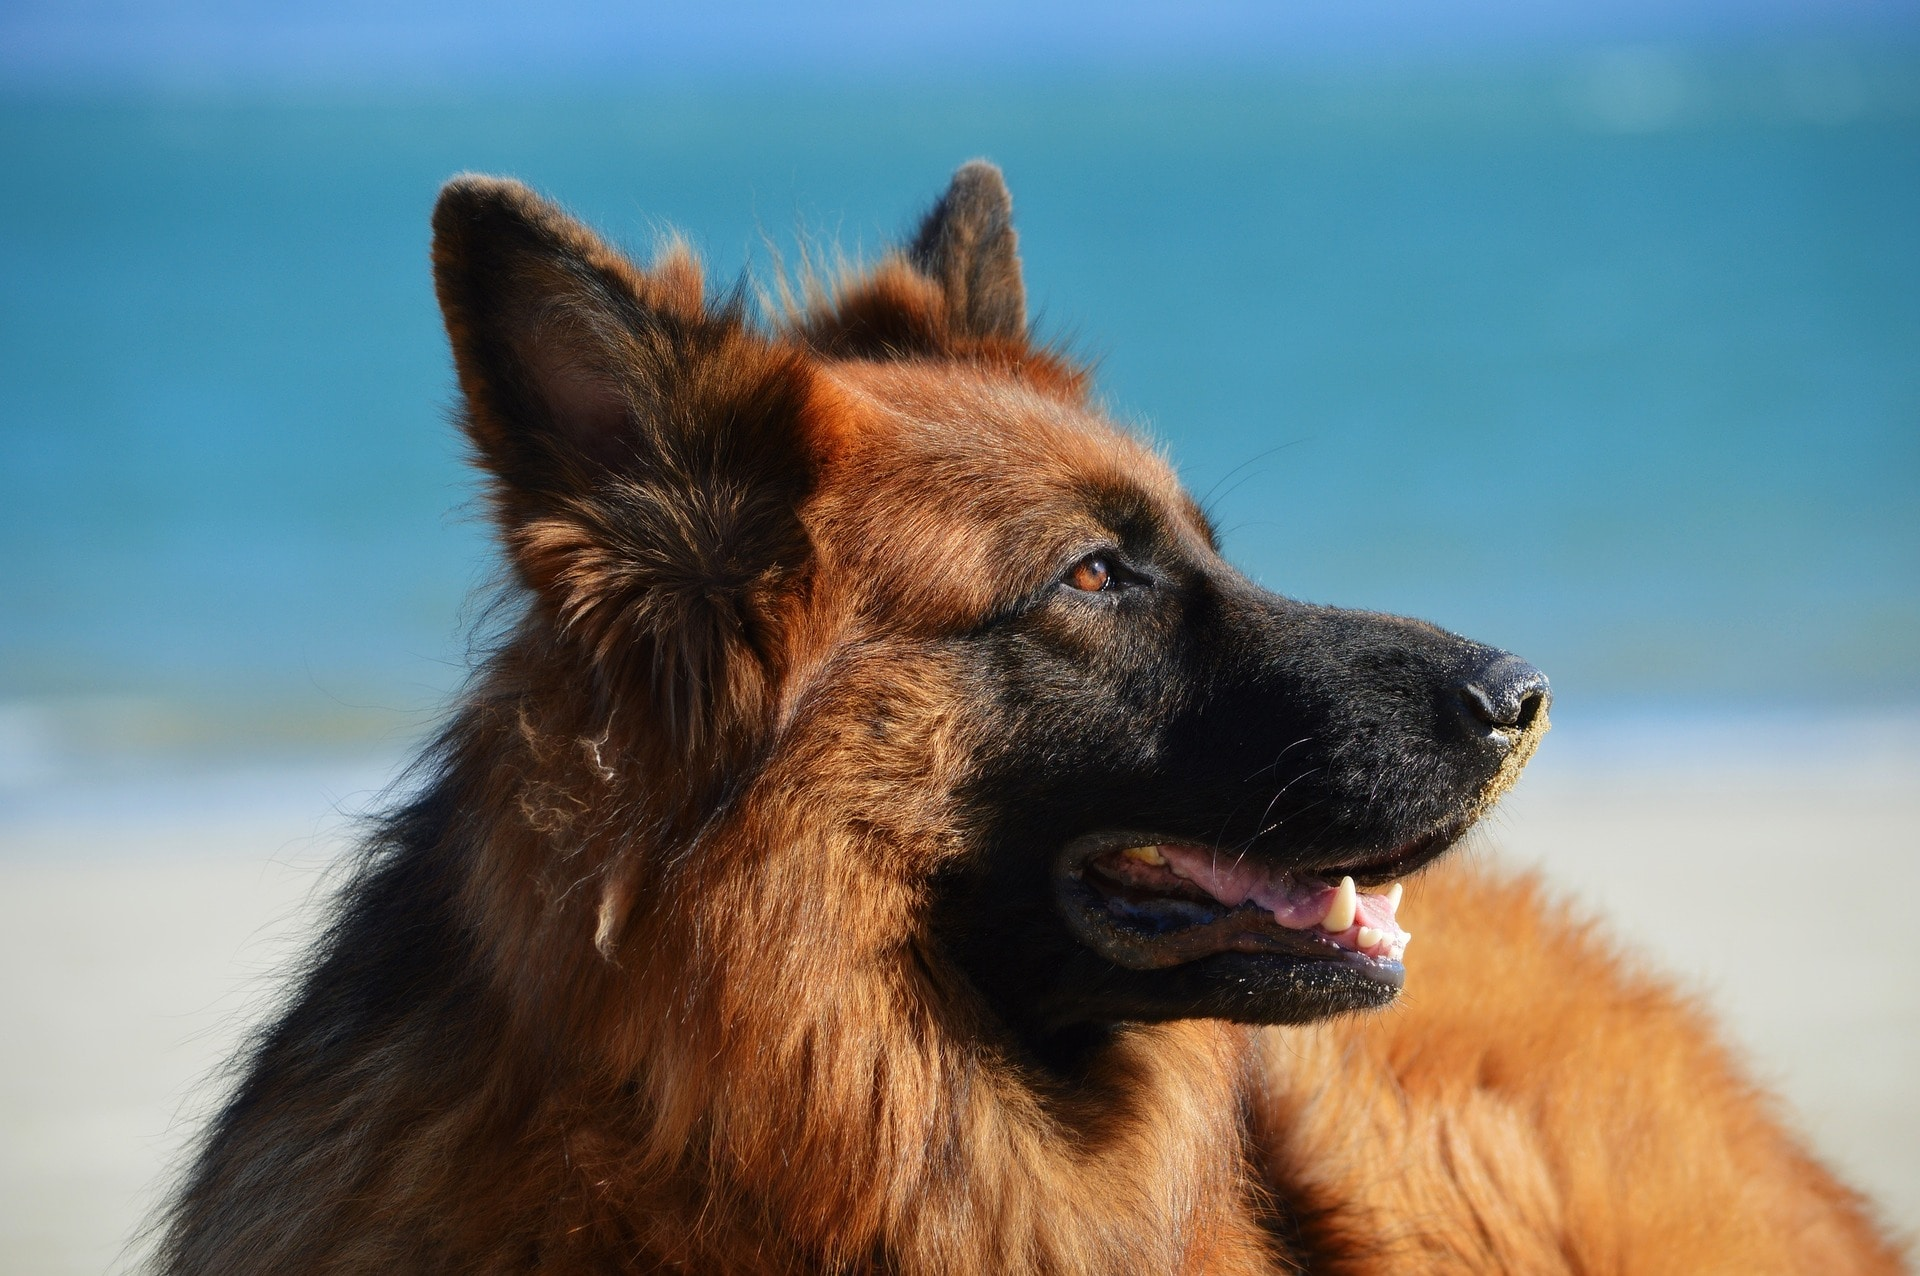 Taking your dog on holiday: the dos and don'ts